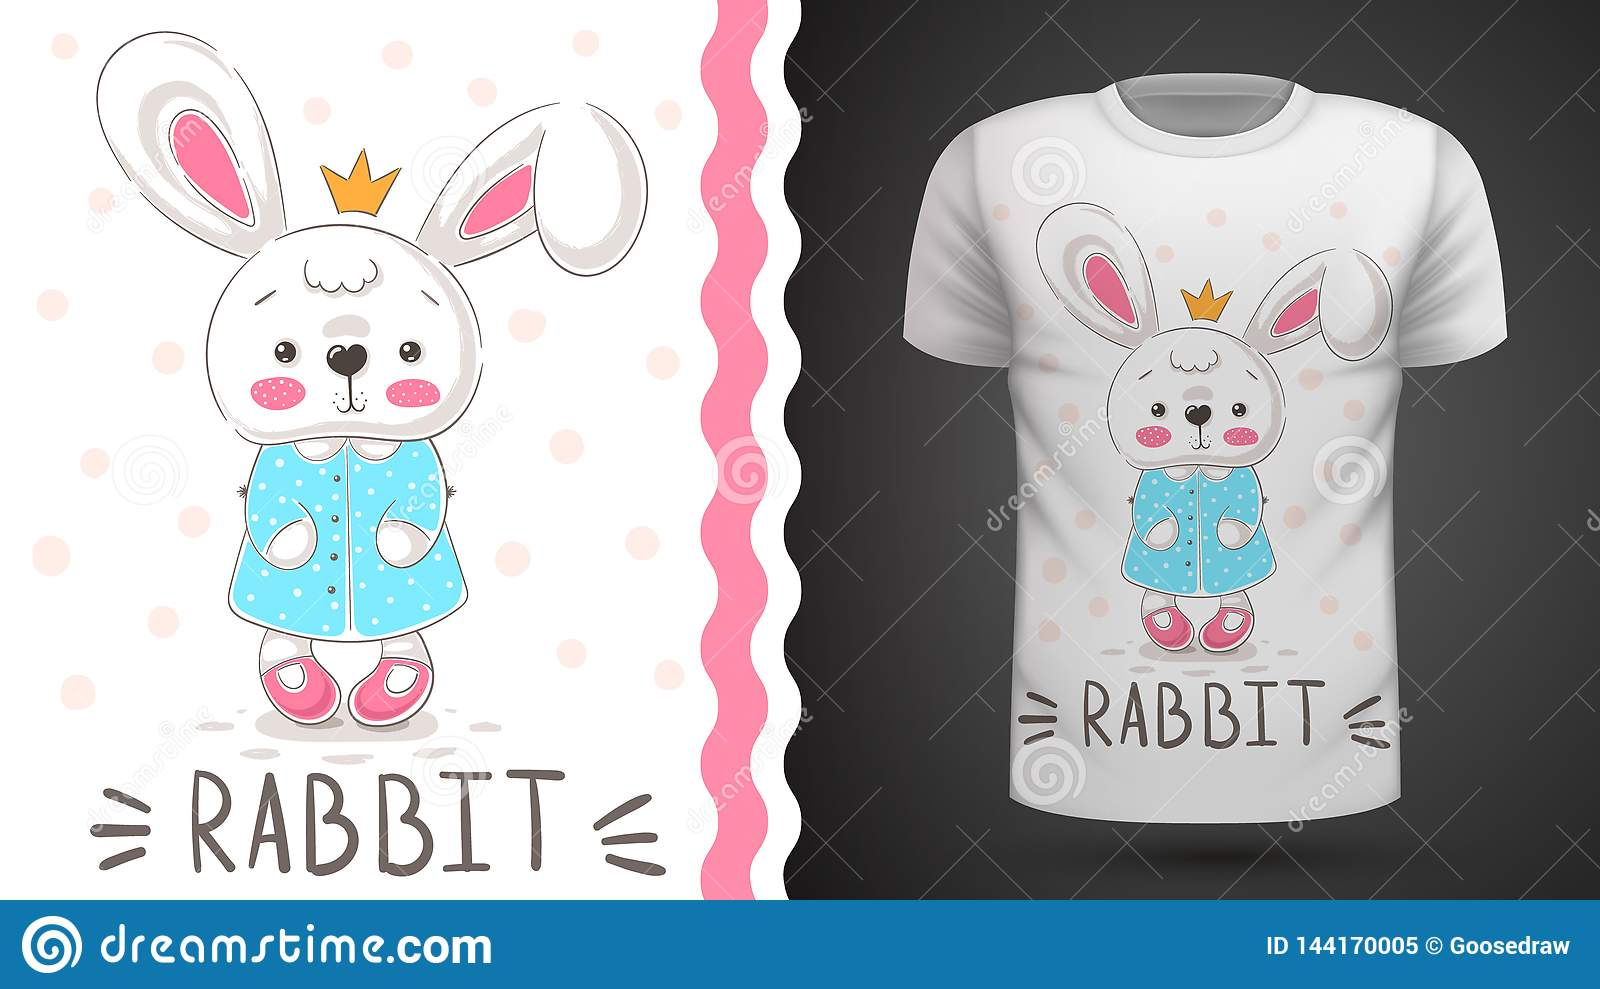 452481d86bb5d Princess Rabbit - Idea For Print T-shirt. Stock Vector ...